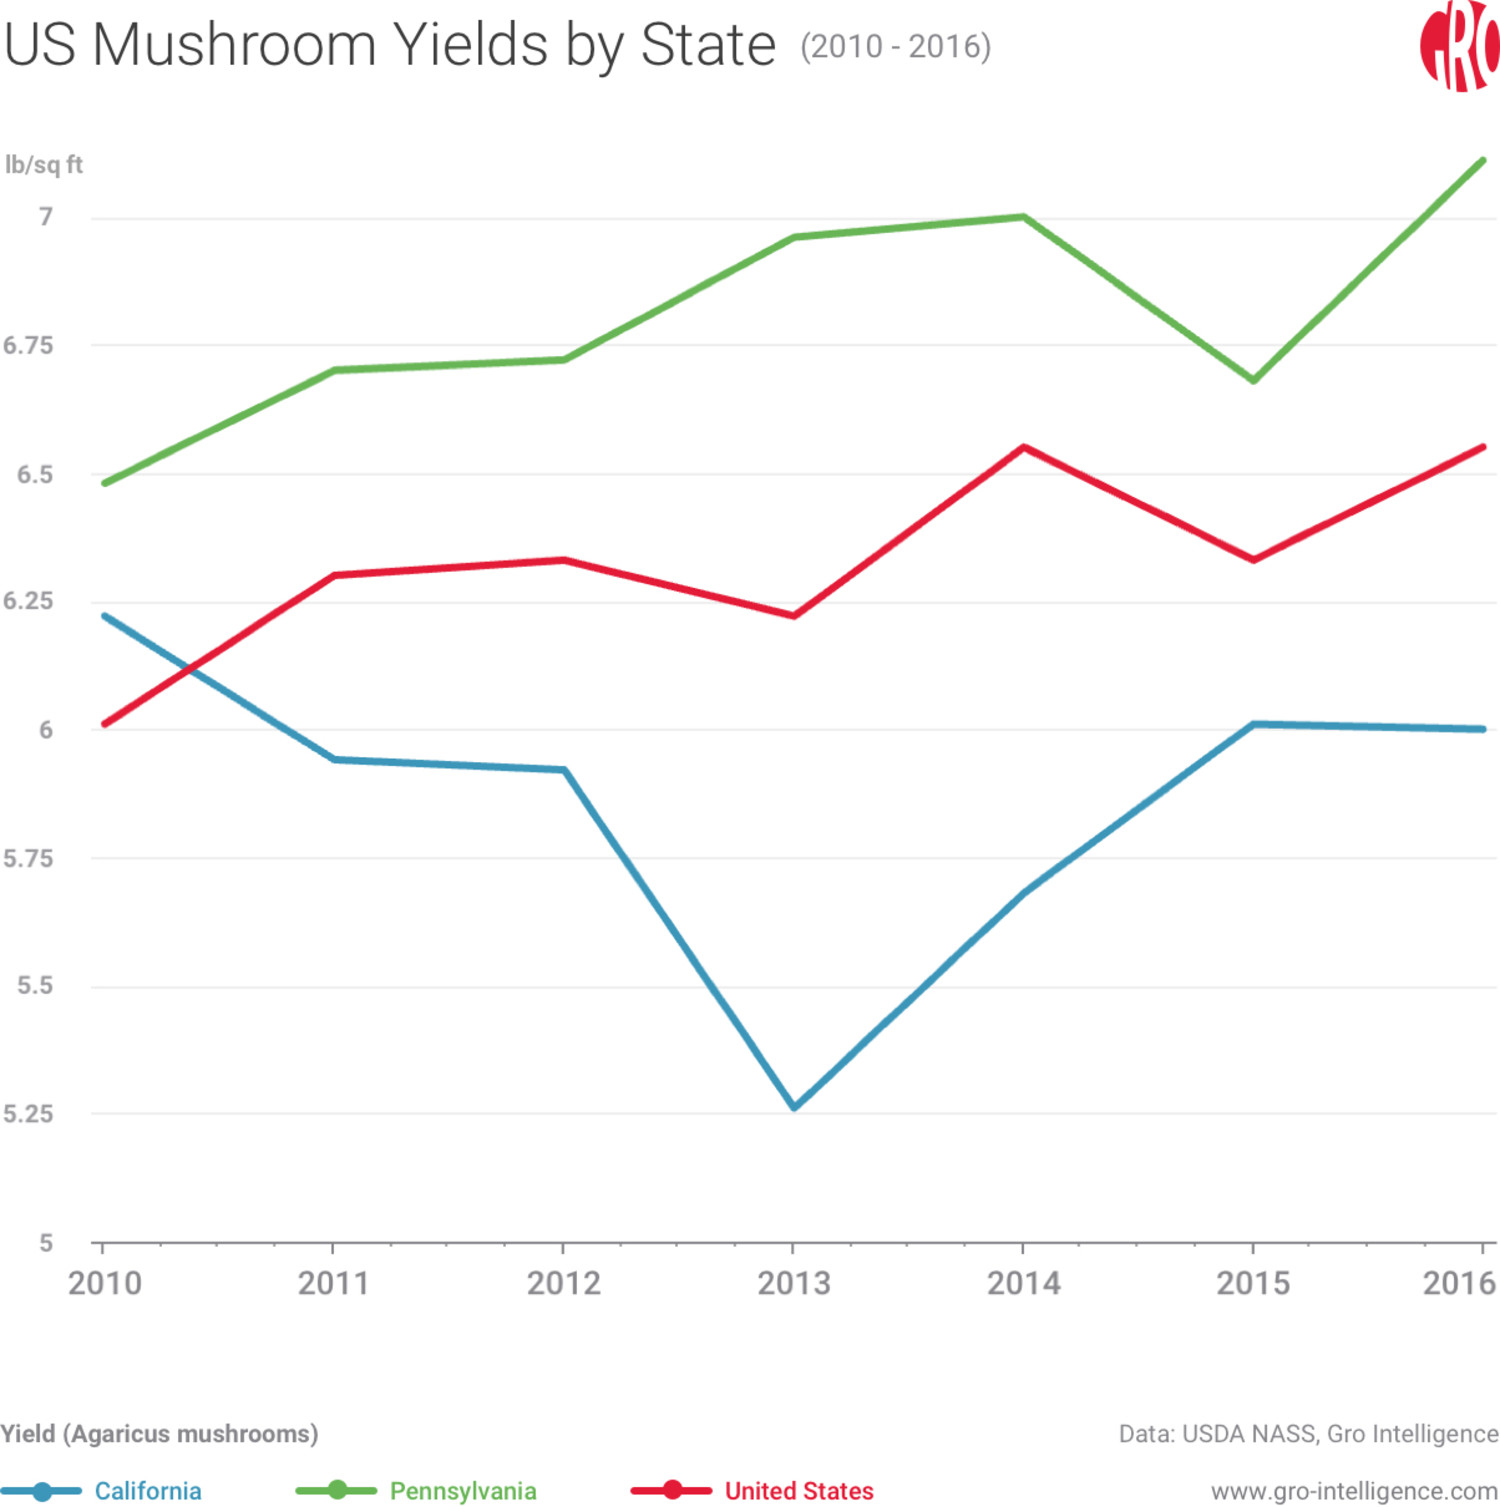 US Mushroom Yields by State